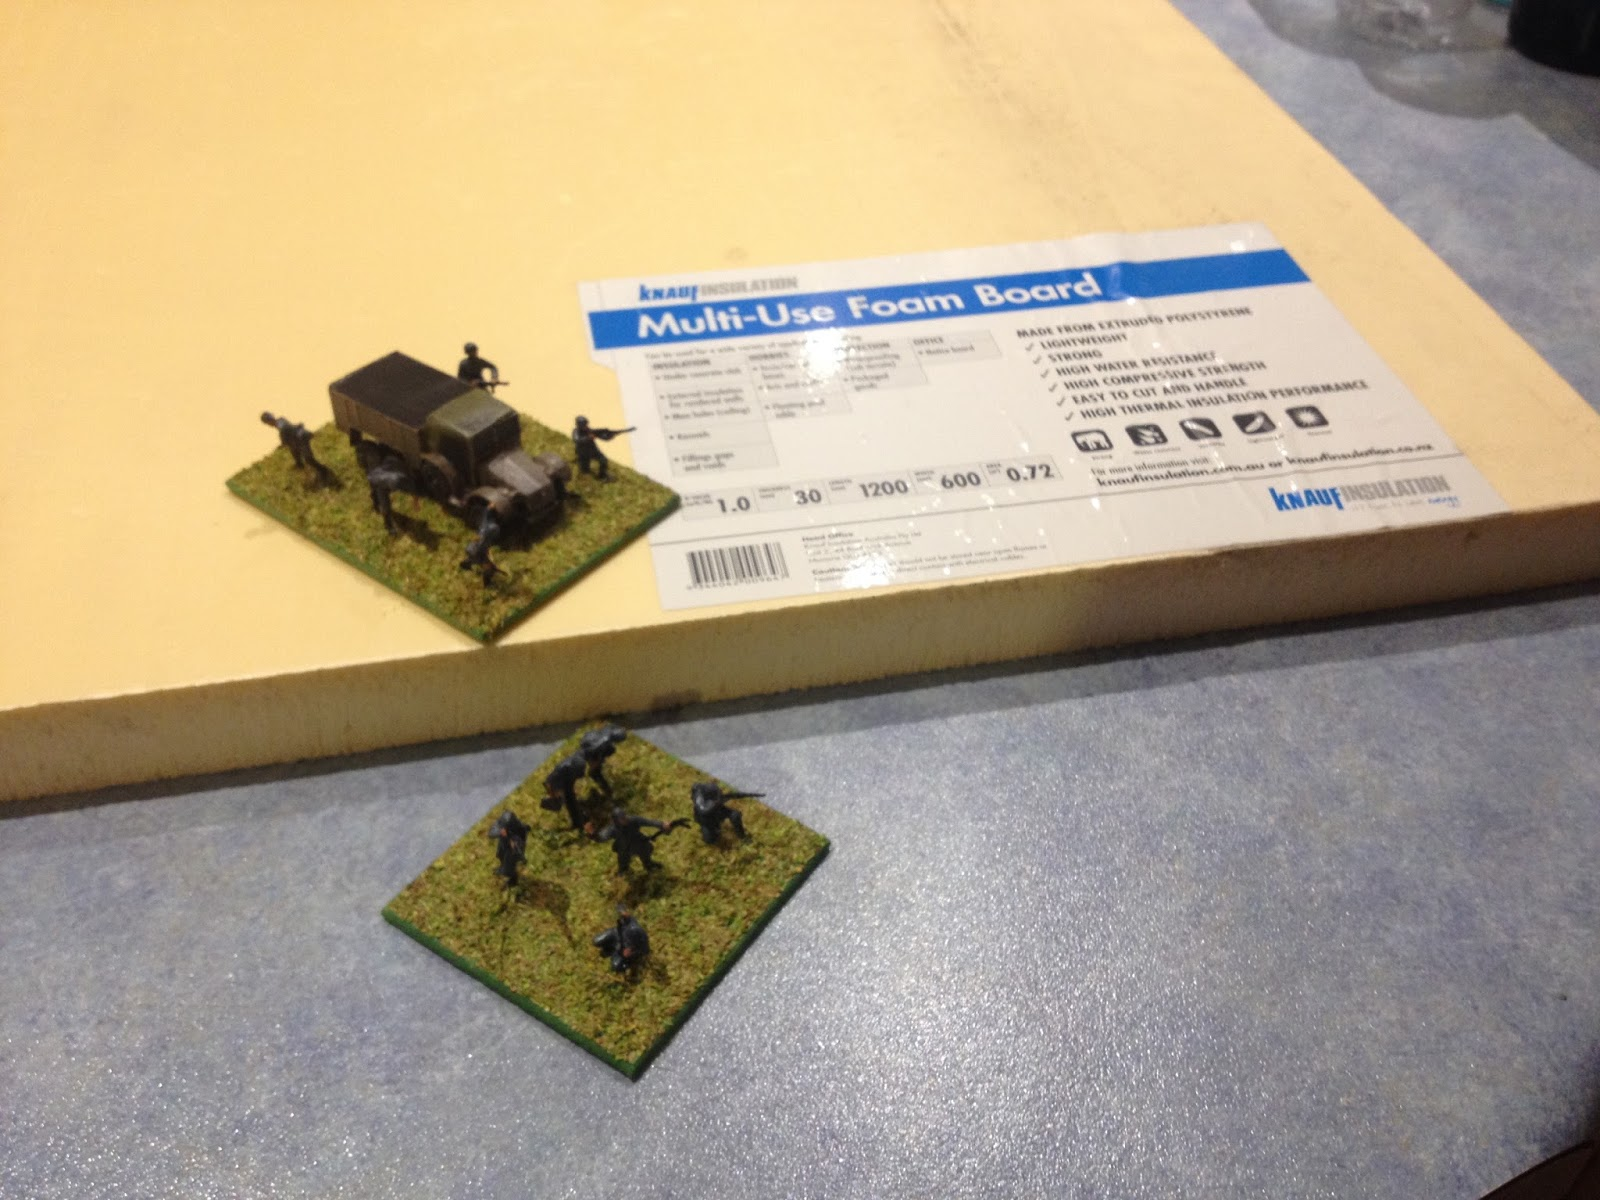 Grid based wargaming - but not always: Hardware and